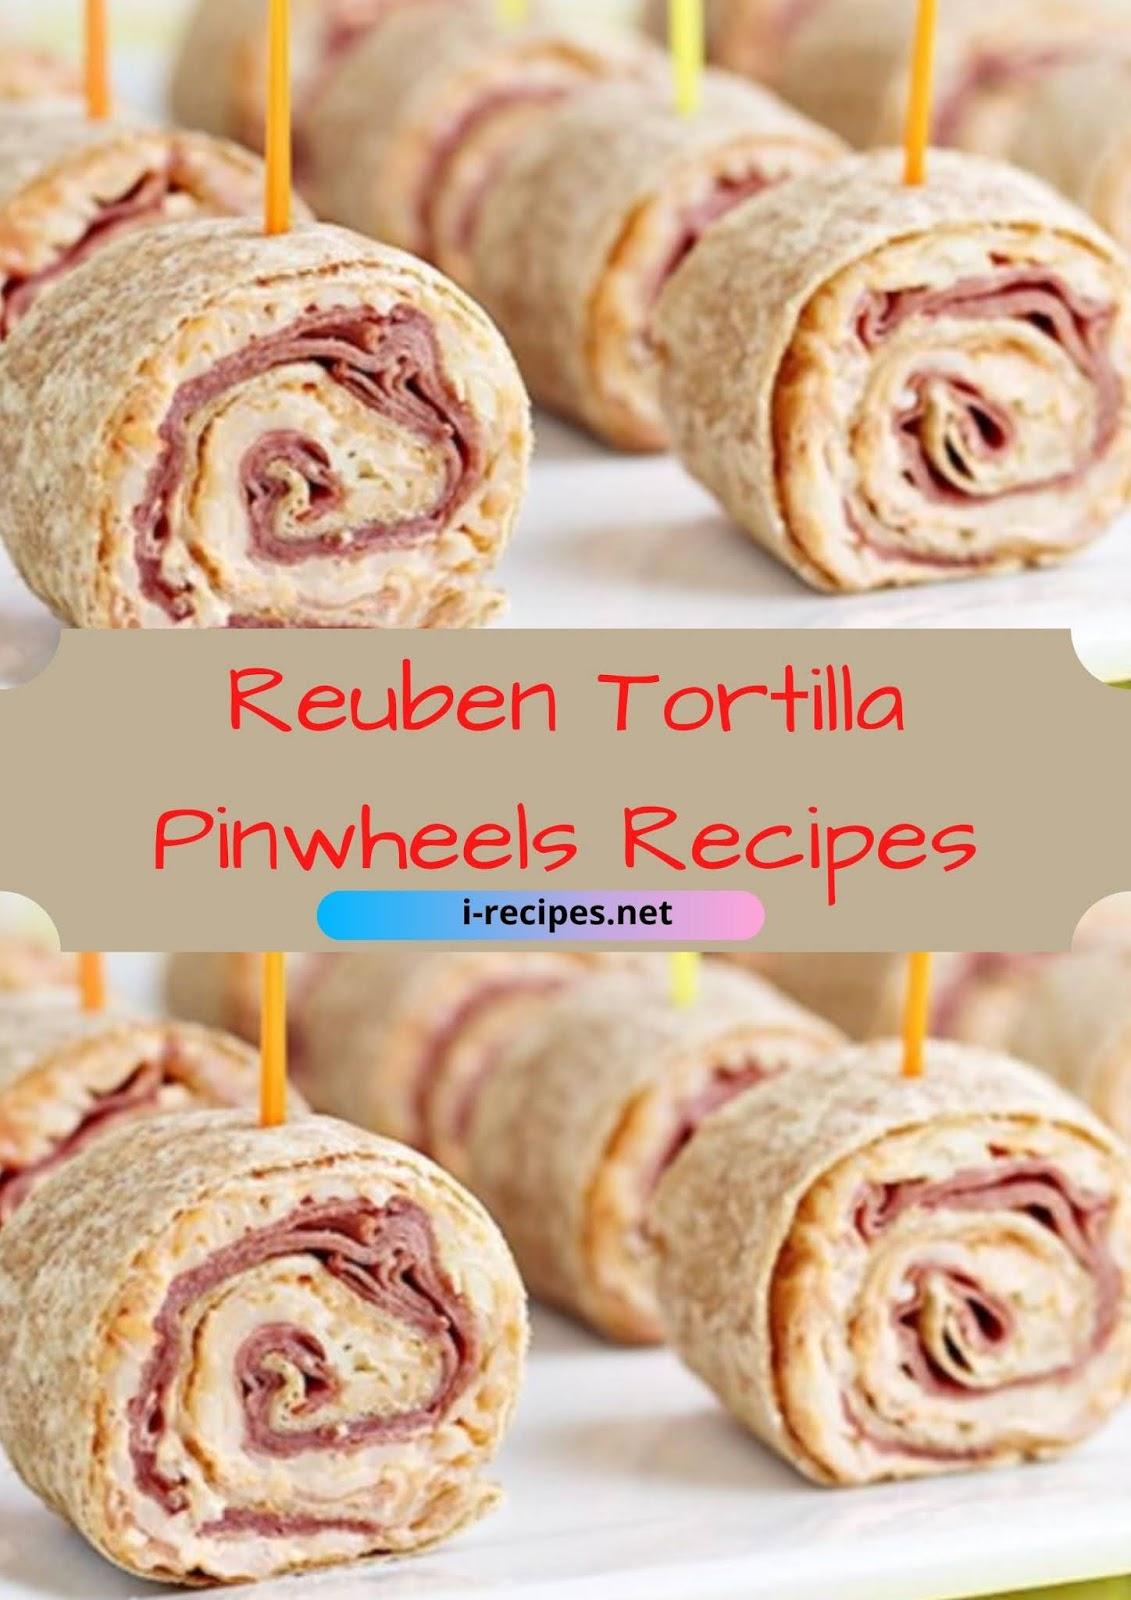 This Reuben Tortilla Pinwheels Recipe is ideal if you're wanting St. Patrick's Day party food, or if you only love all the flavors during a Reuben sandwich.